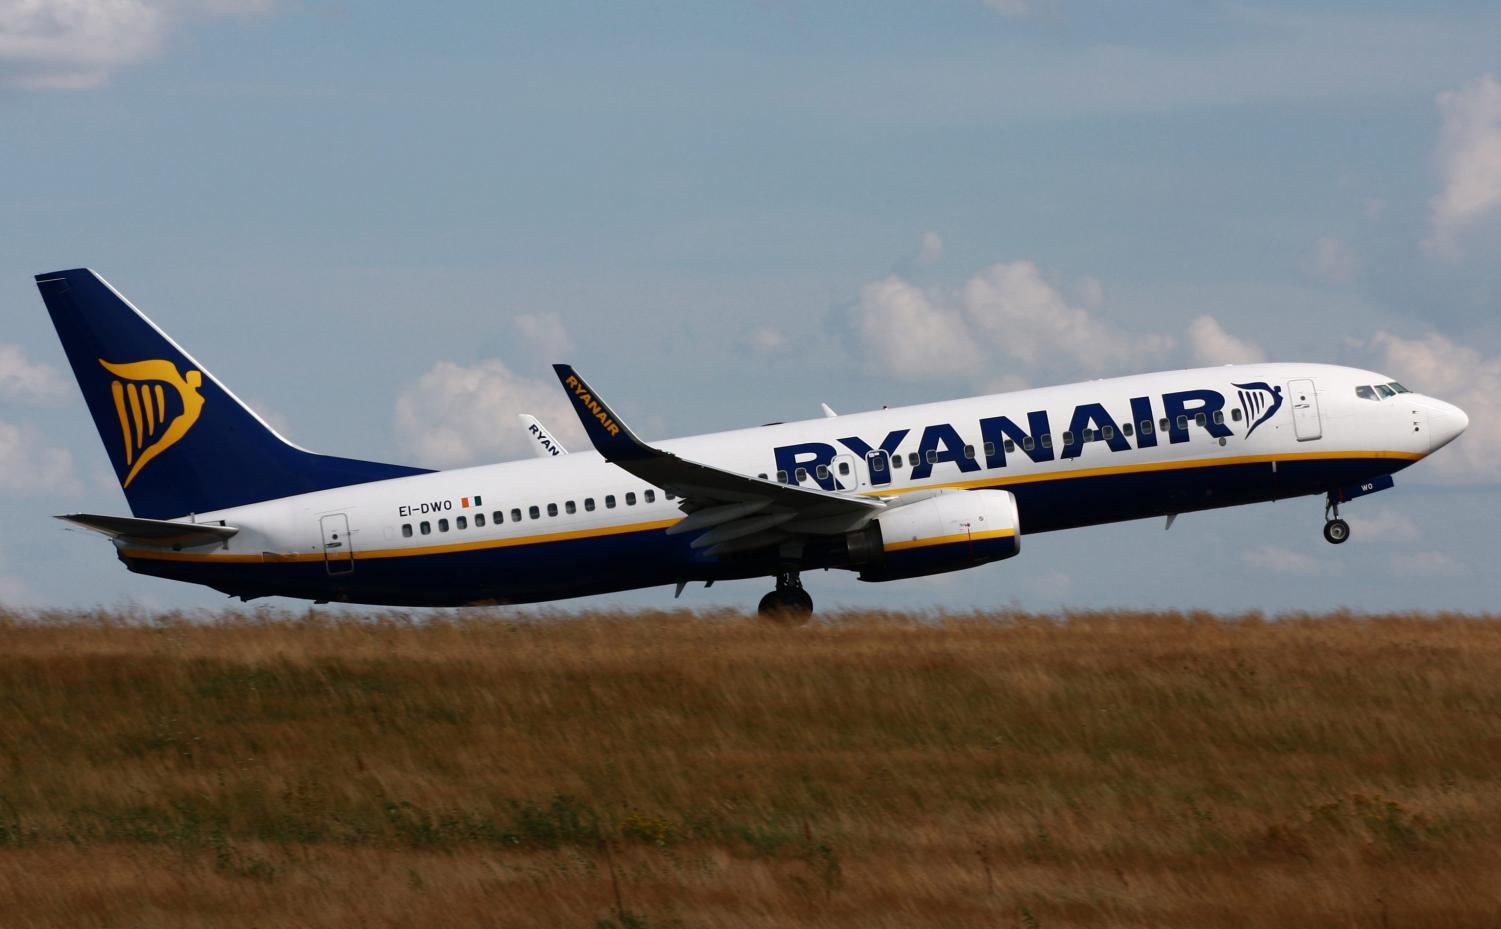 Ryanair often offers flights within Europe for less than $20